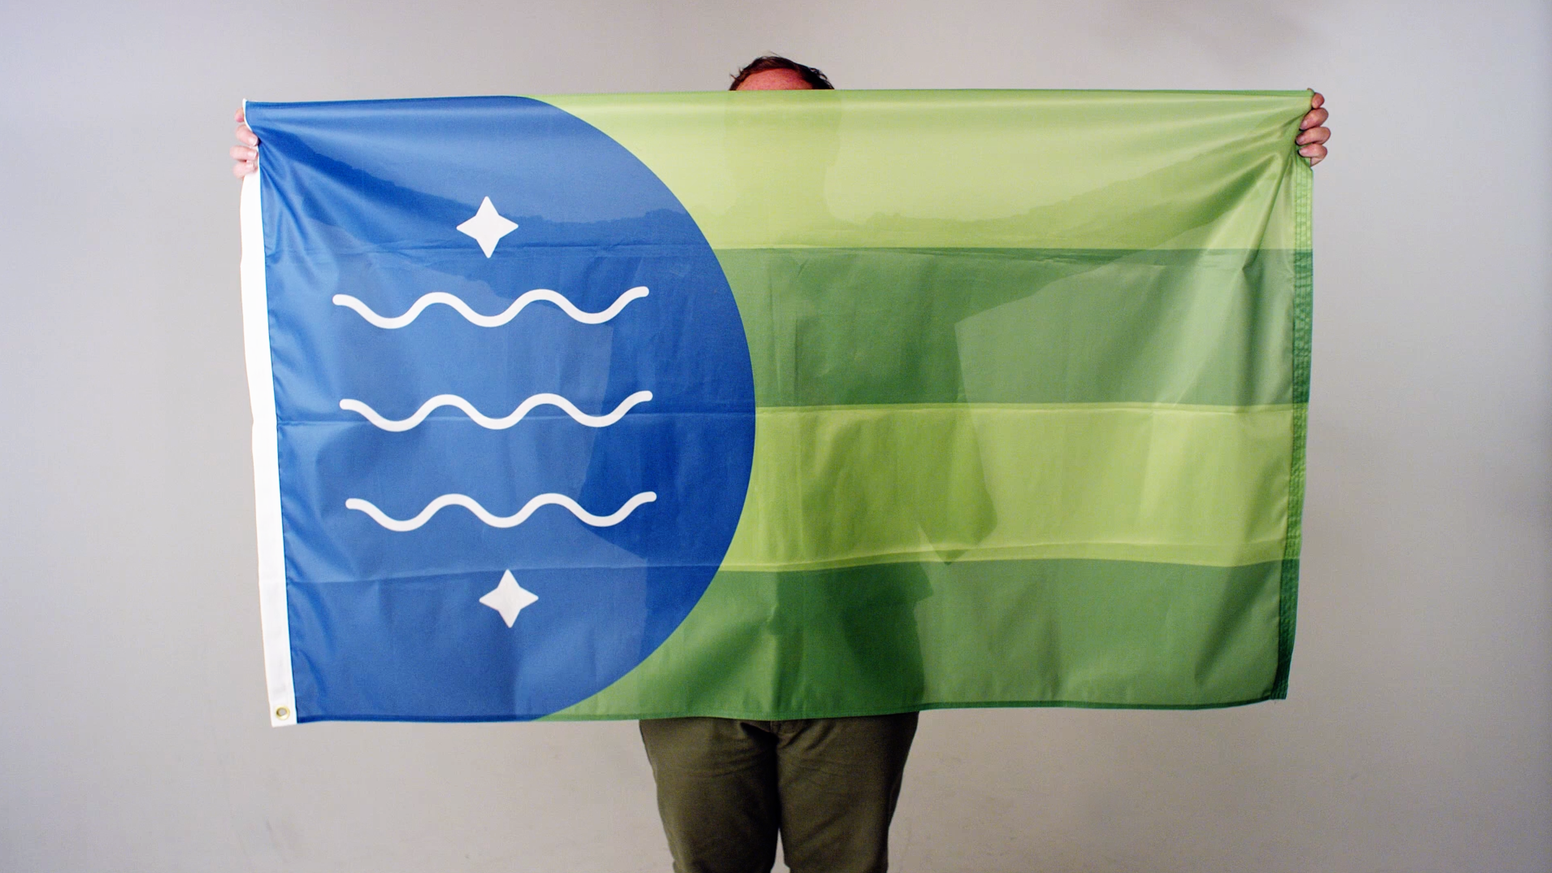 A new flag for Bellingham, Washington for sale for the first time ever.